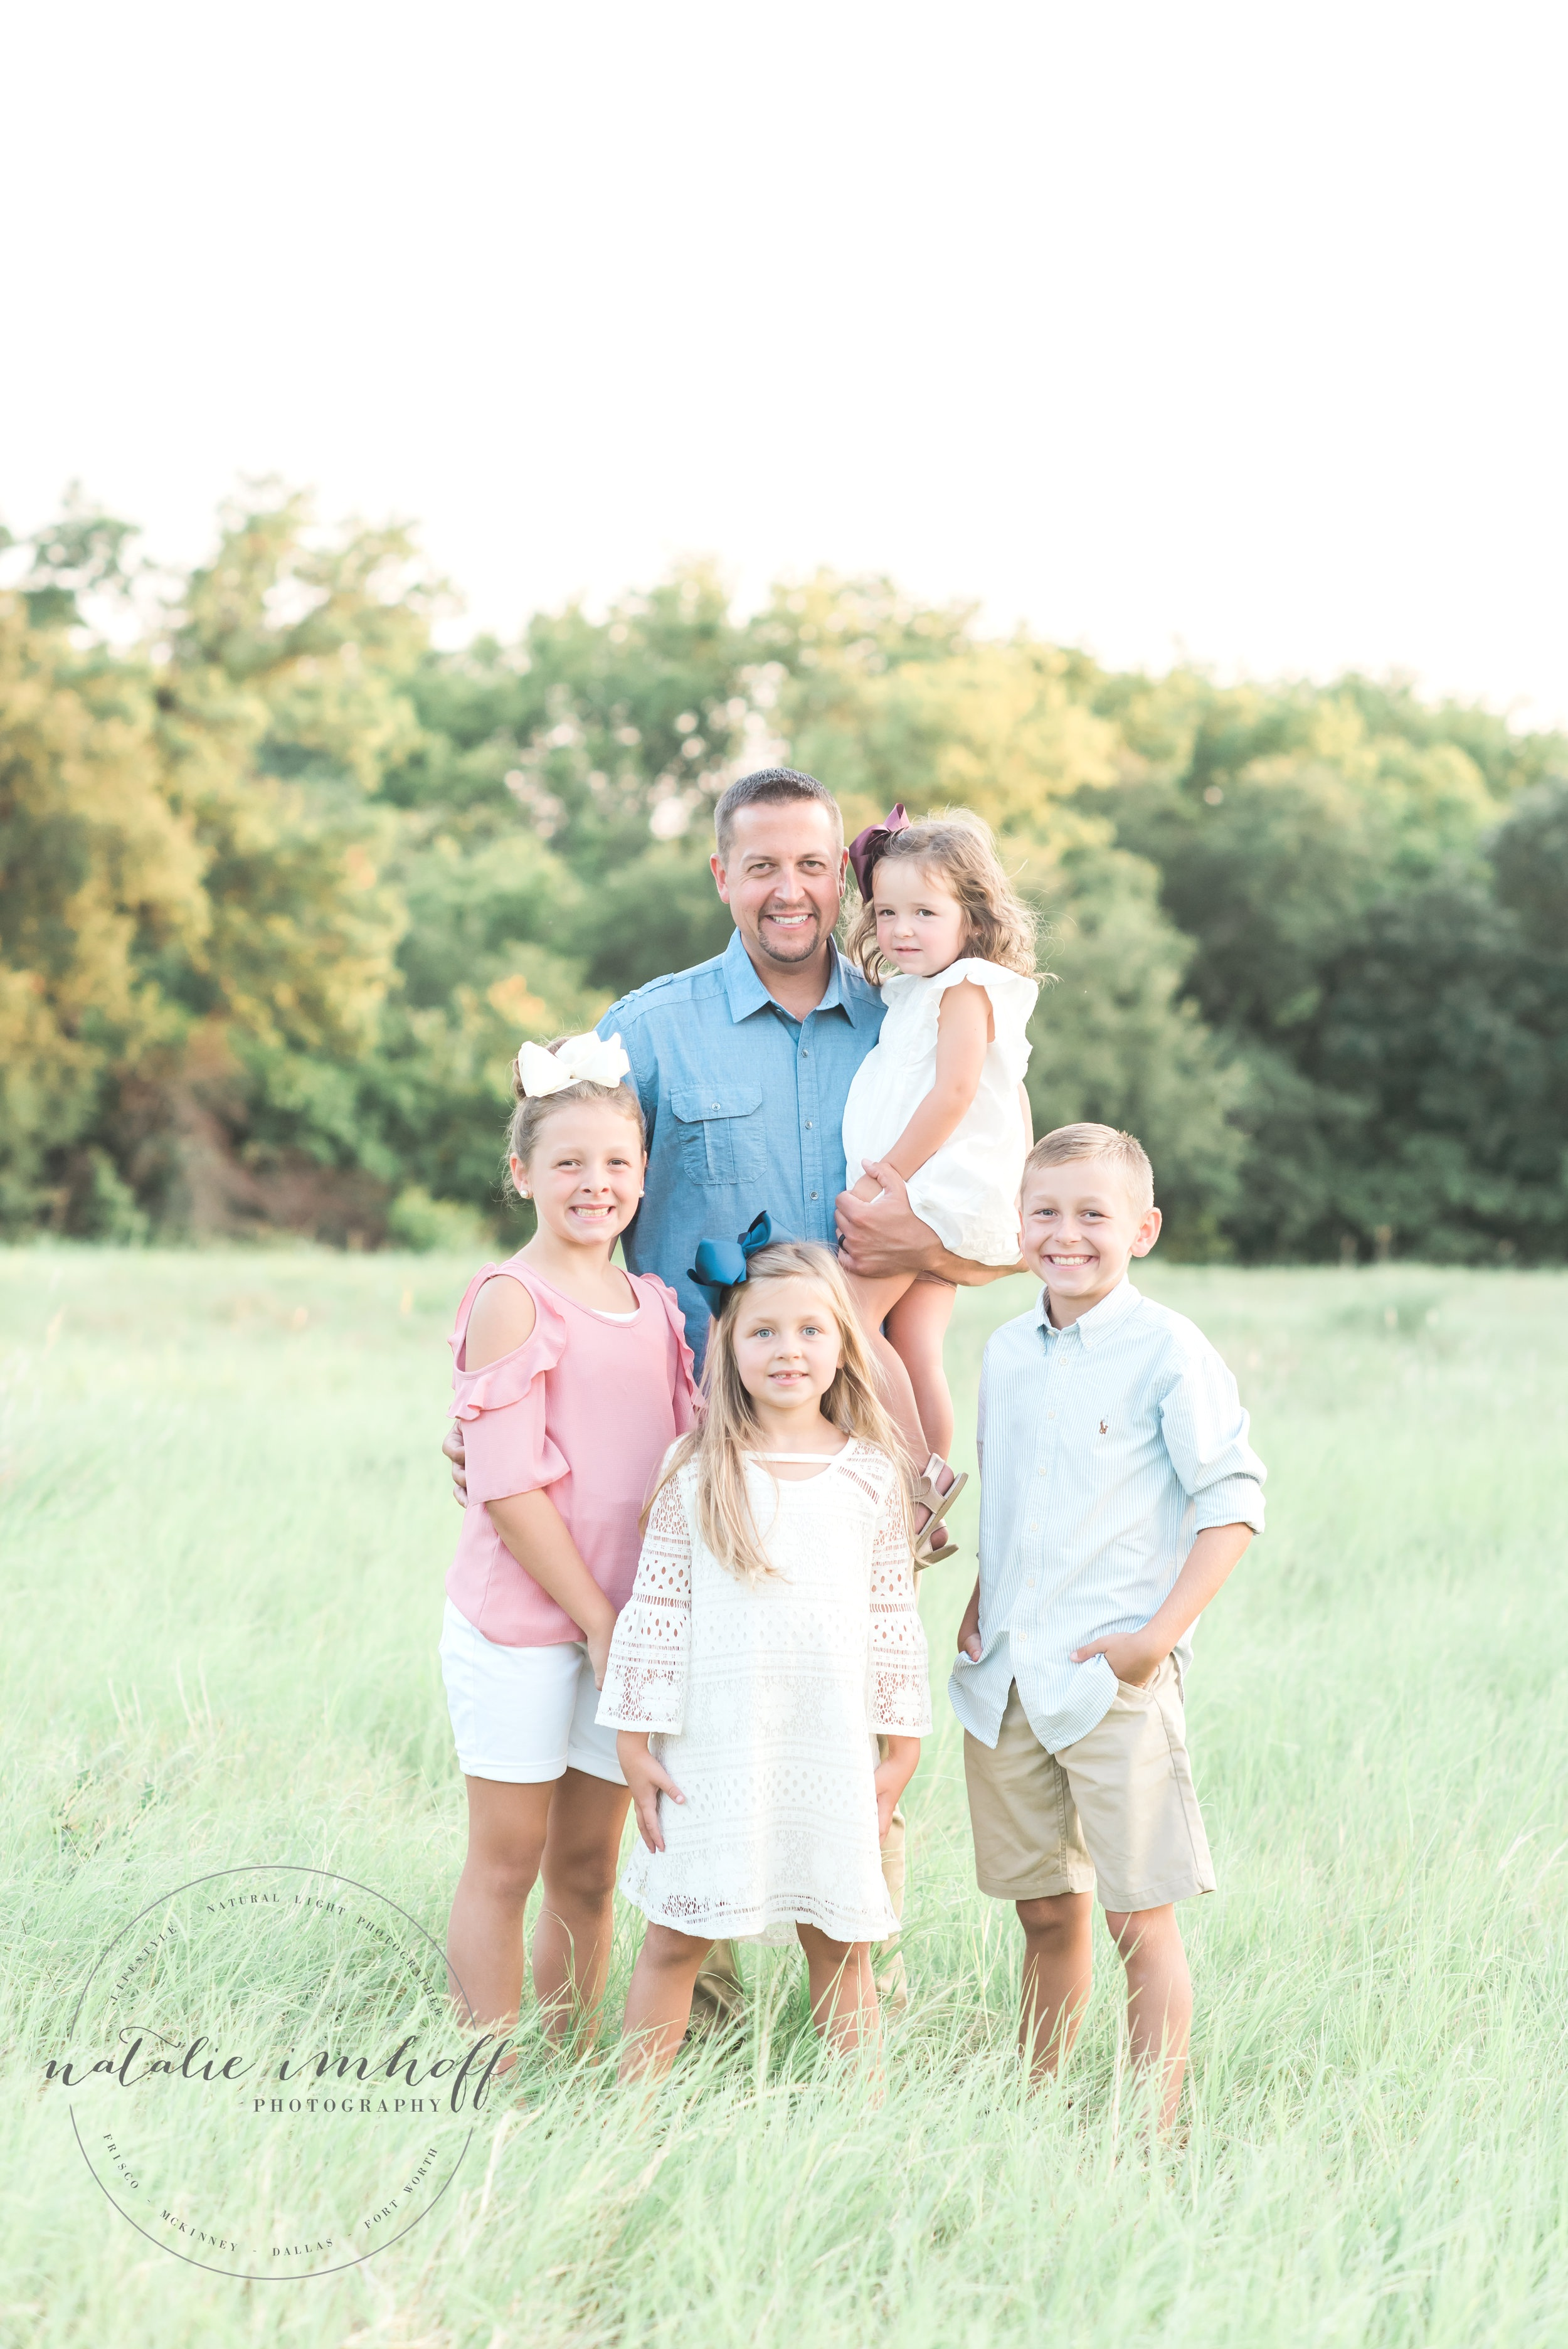 FAMILY + KIDS LIFESTYLE SESSIONS - $27545-60 minute sessions20 images included w/ digital release* additional images available for purchase